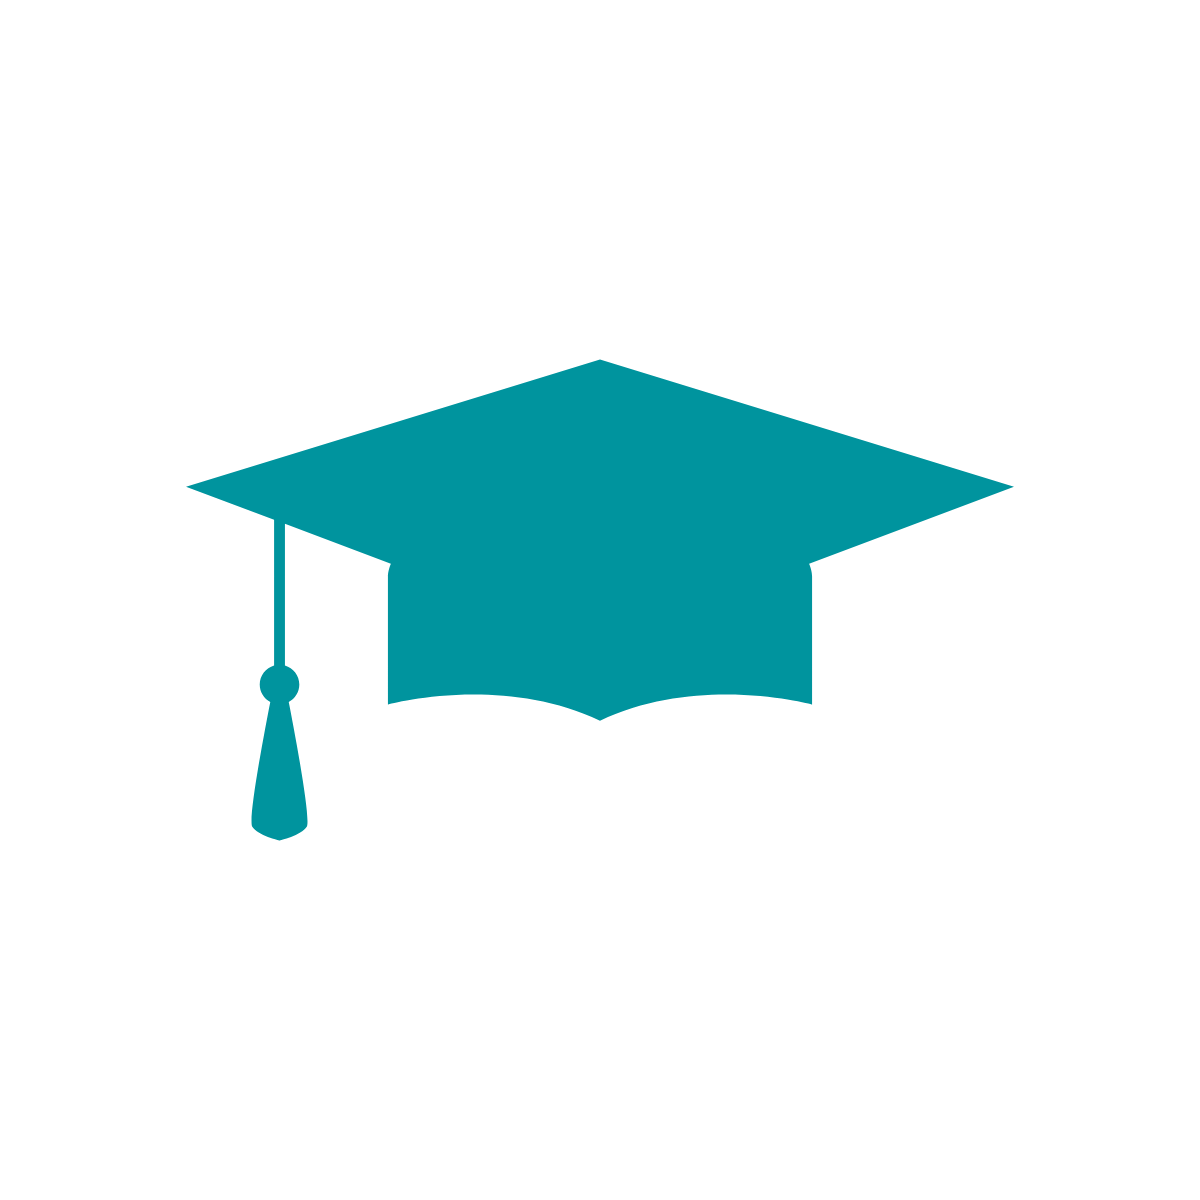 Icon of graduate cap